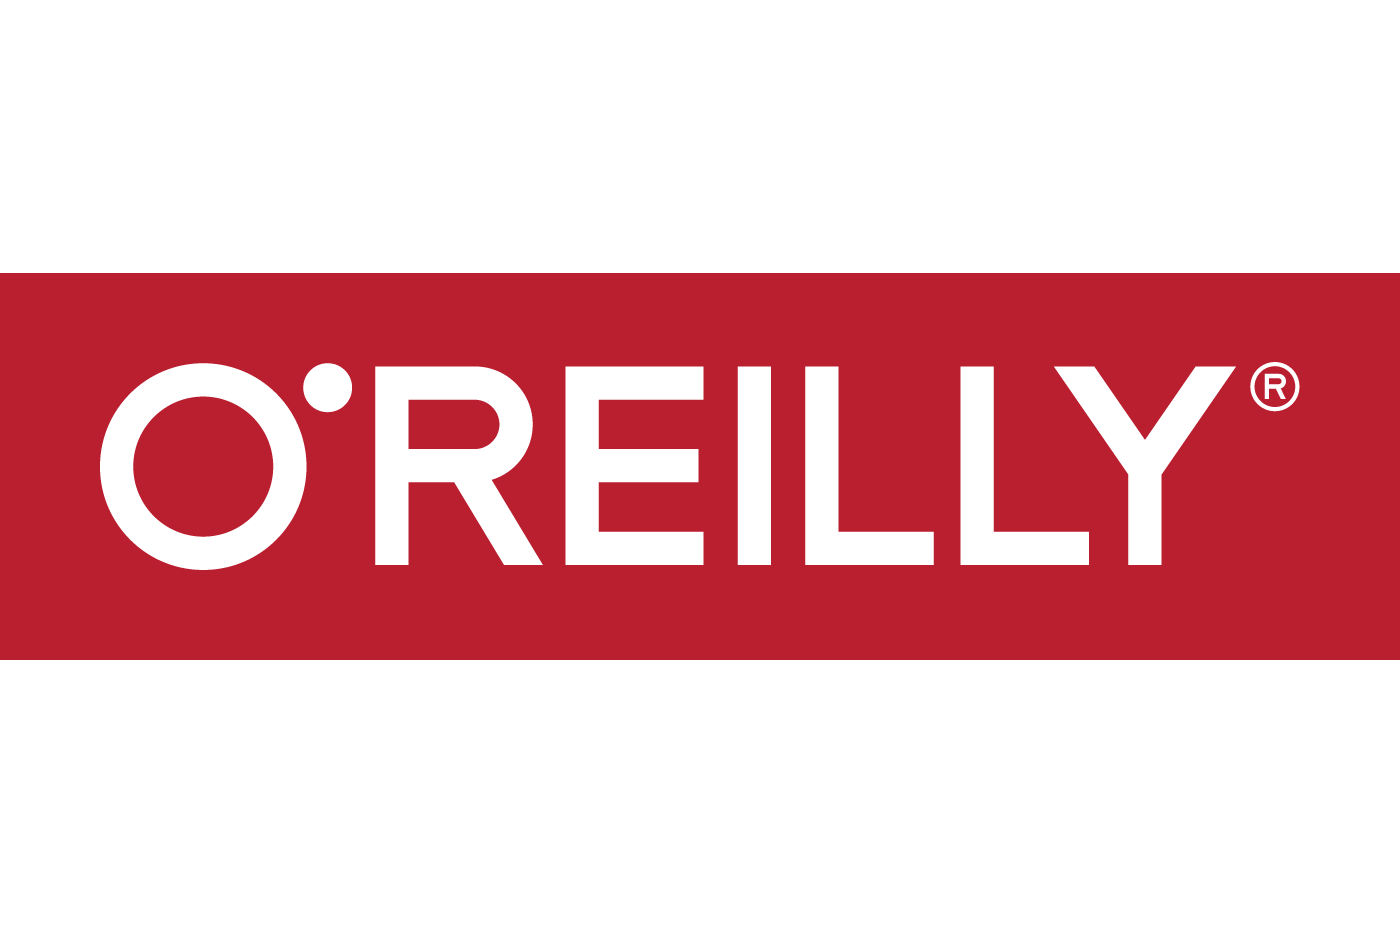 My upcoming O'Reilly business analytics online training courses